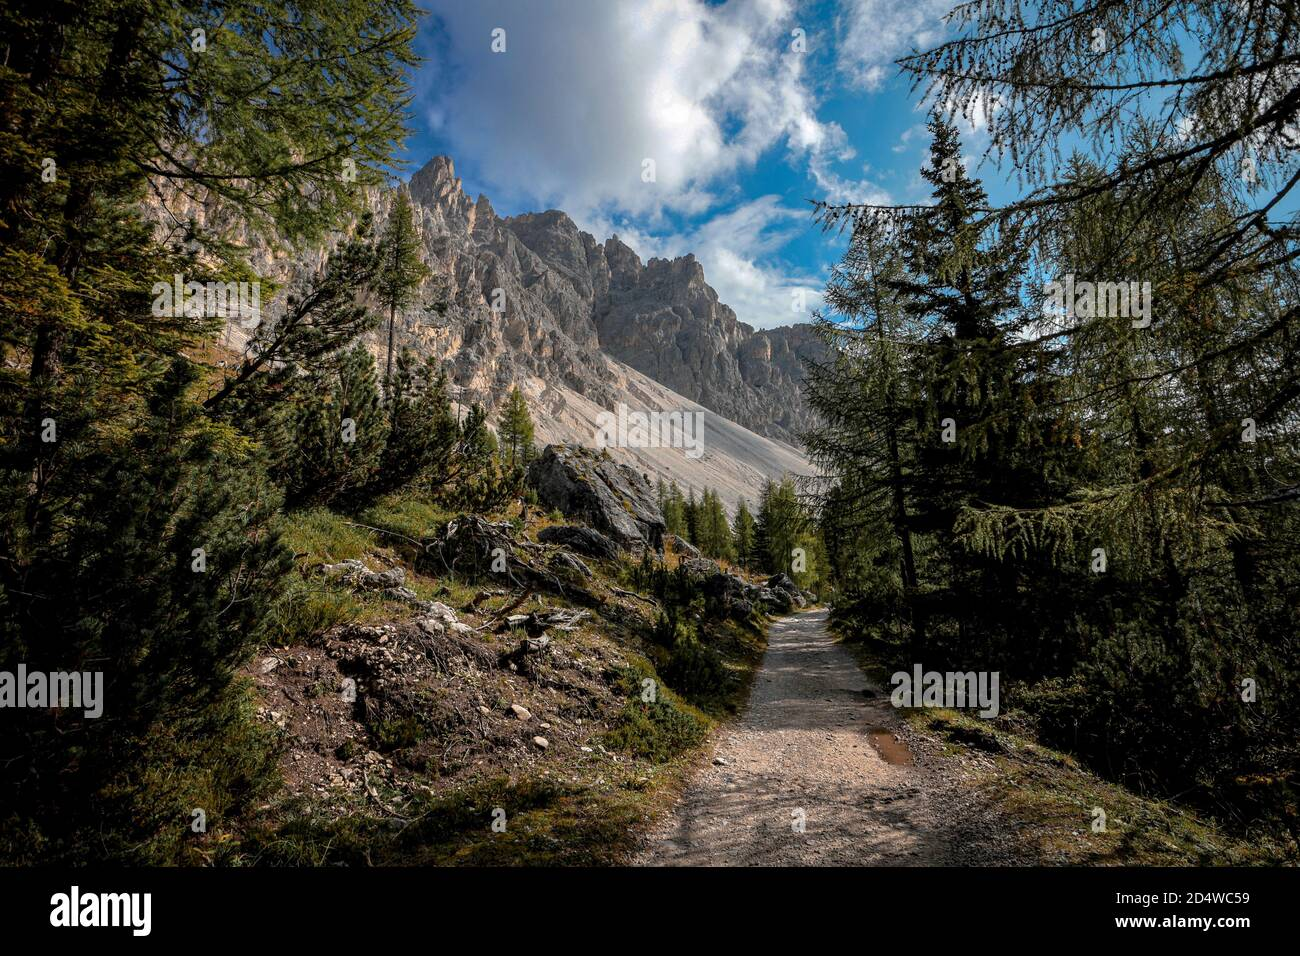 hiking-path-in-the-mountain-landscape-of